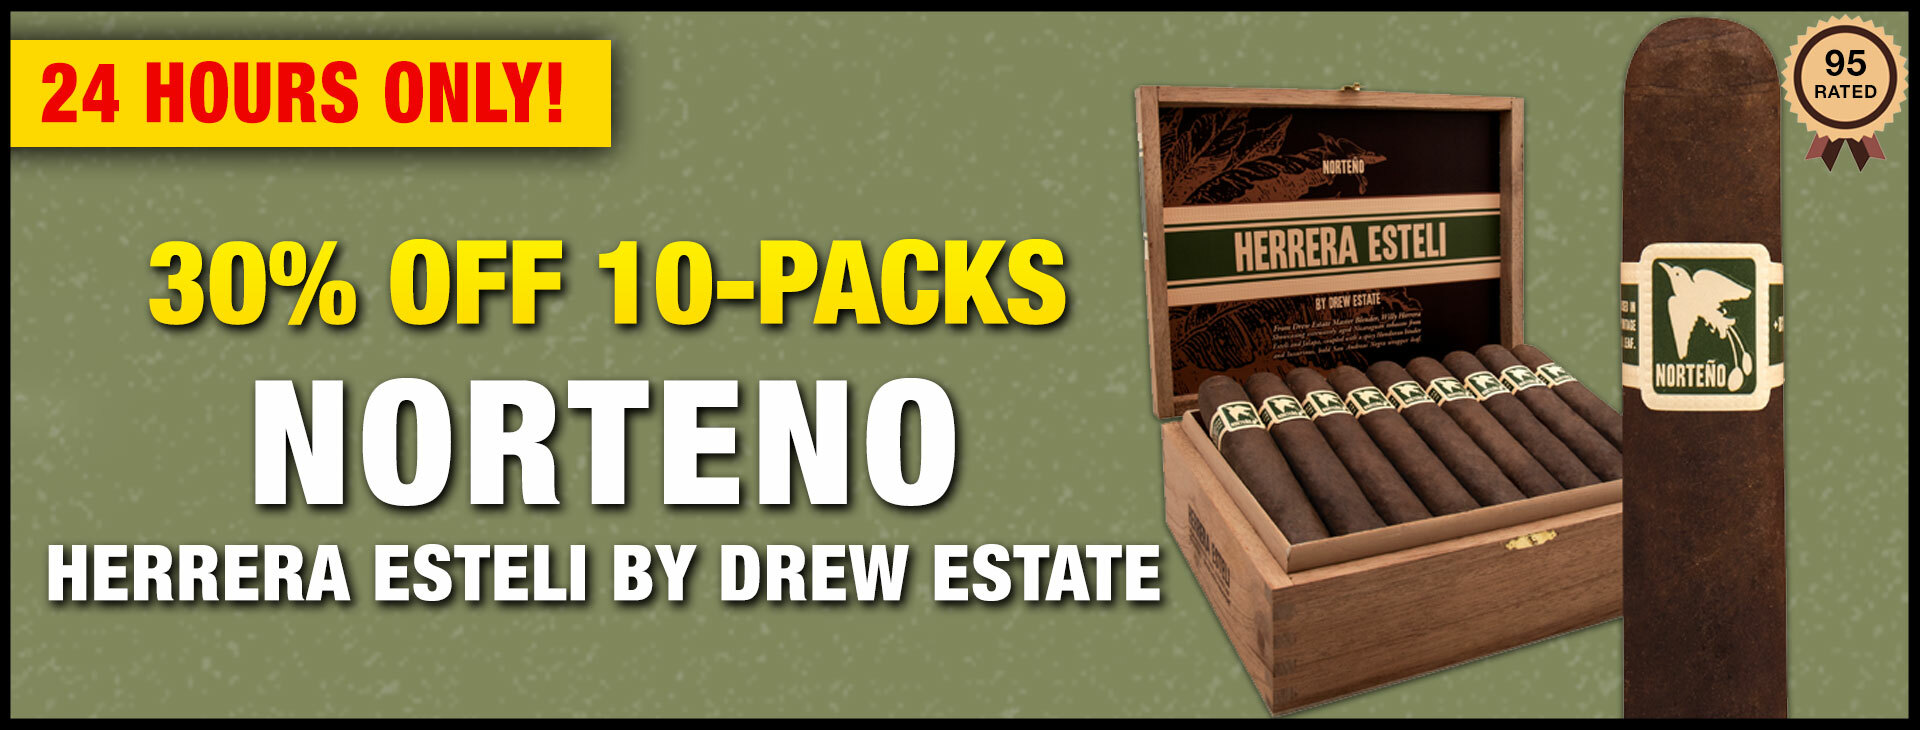 Drew Estate Norteño 10 Pack Deals!